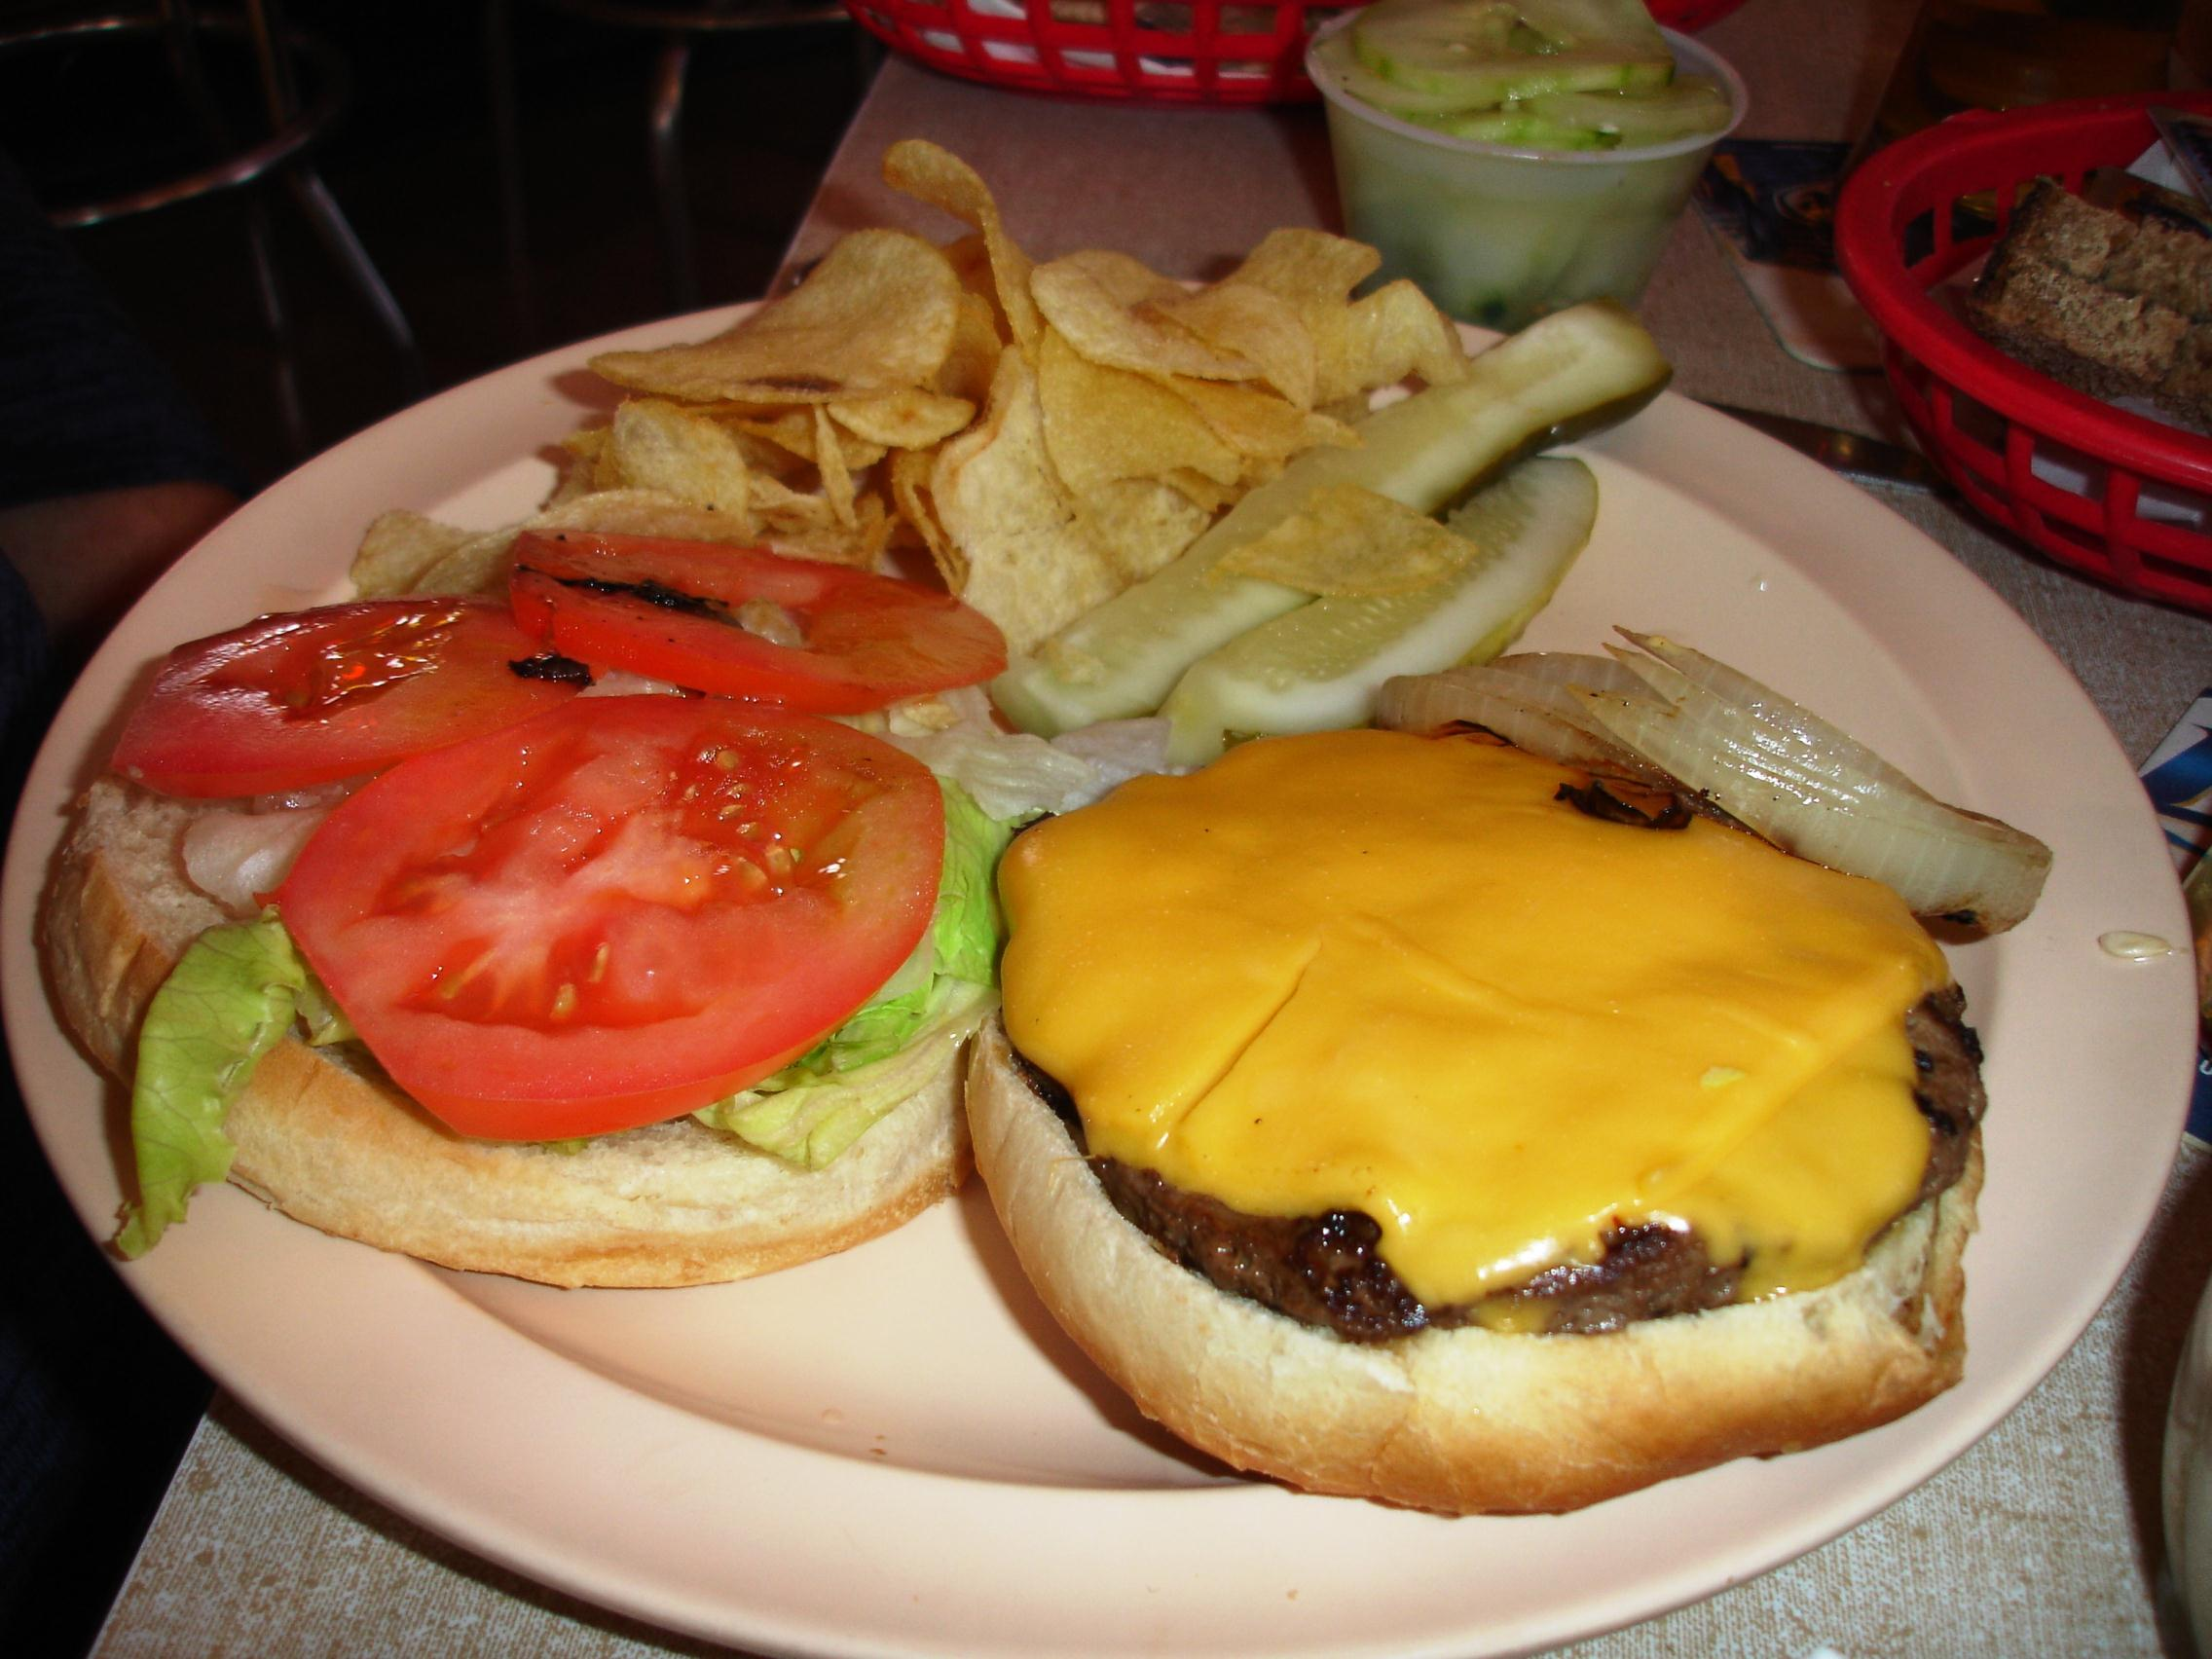 Missed Wanda's hot lunch? Burgers are always available.